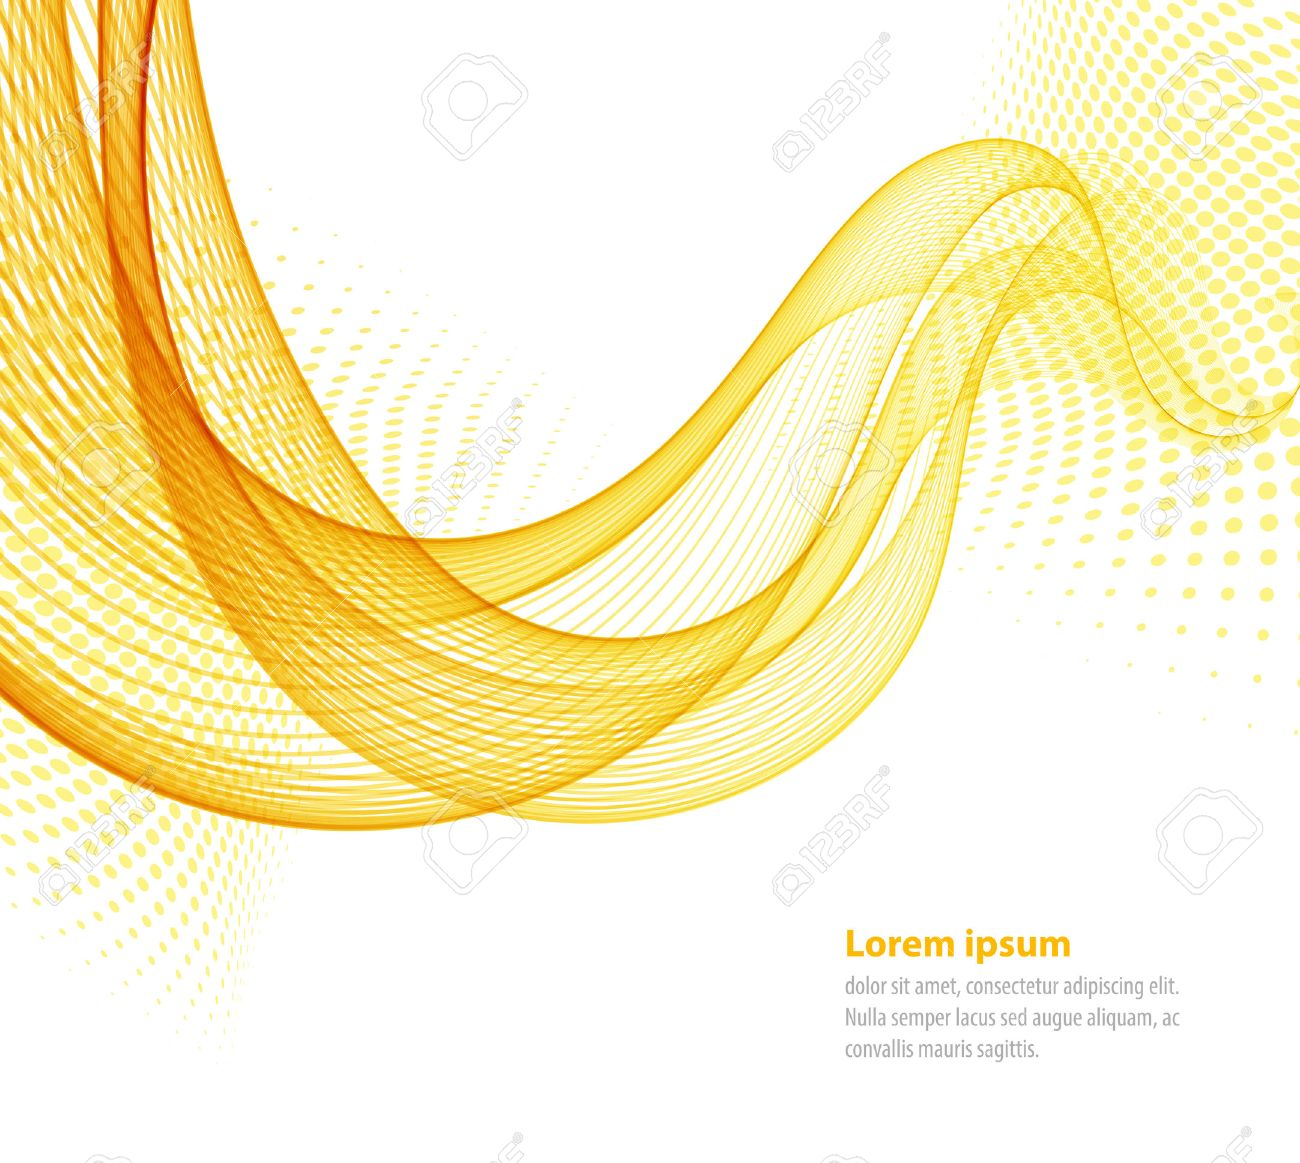 Vector smooth Yellow Transparent abstract waves For cover book, brochure, flyer, poster, magazine, website, annual report - 45352396